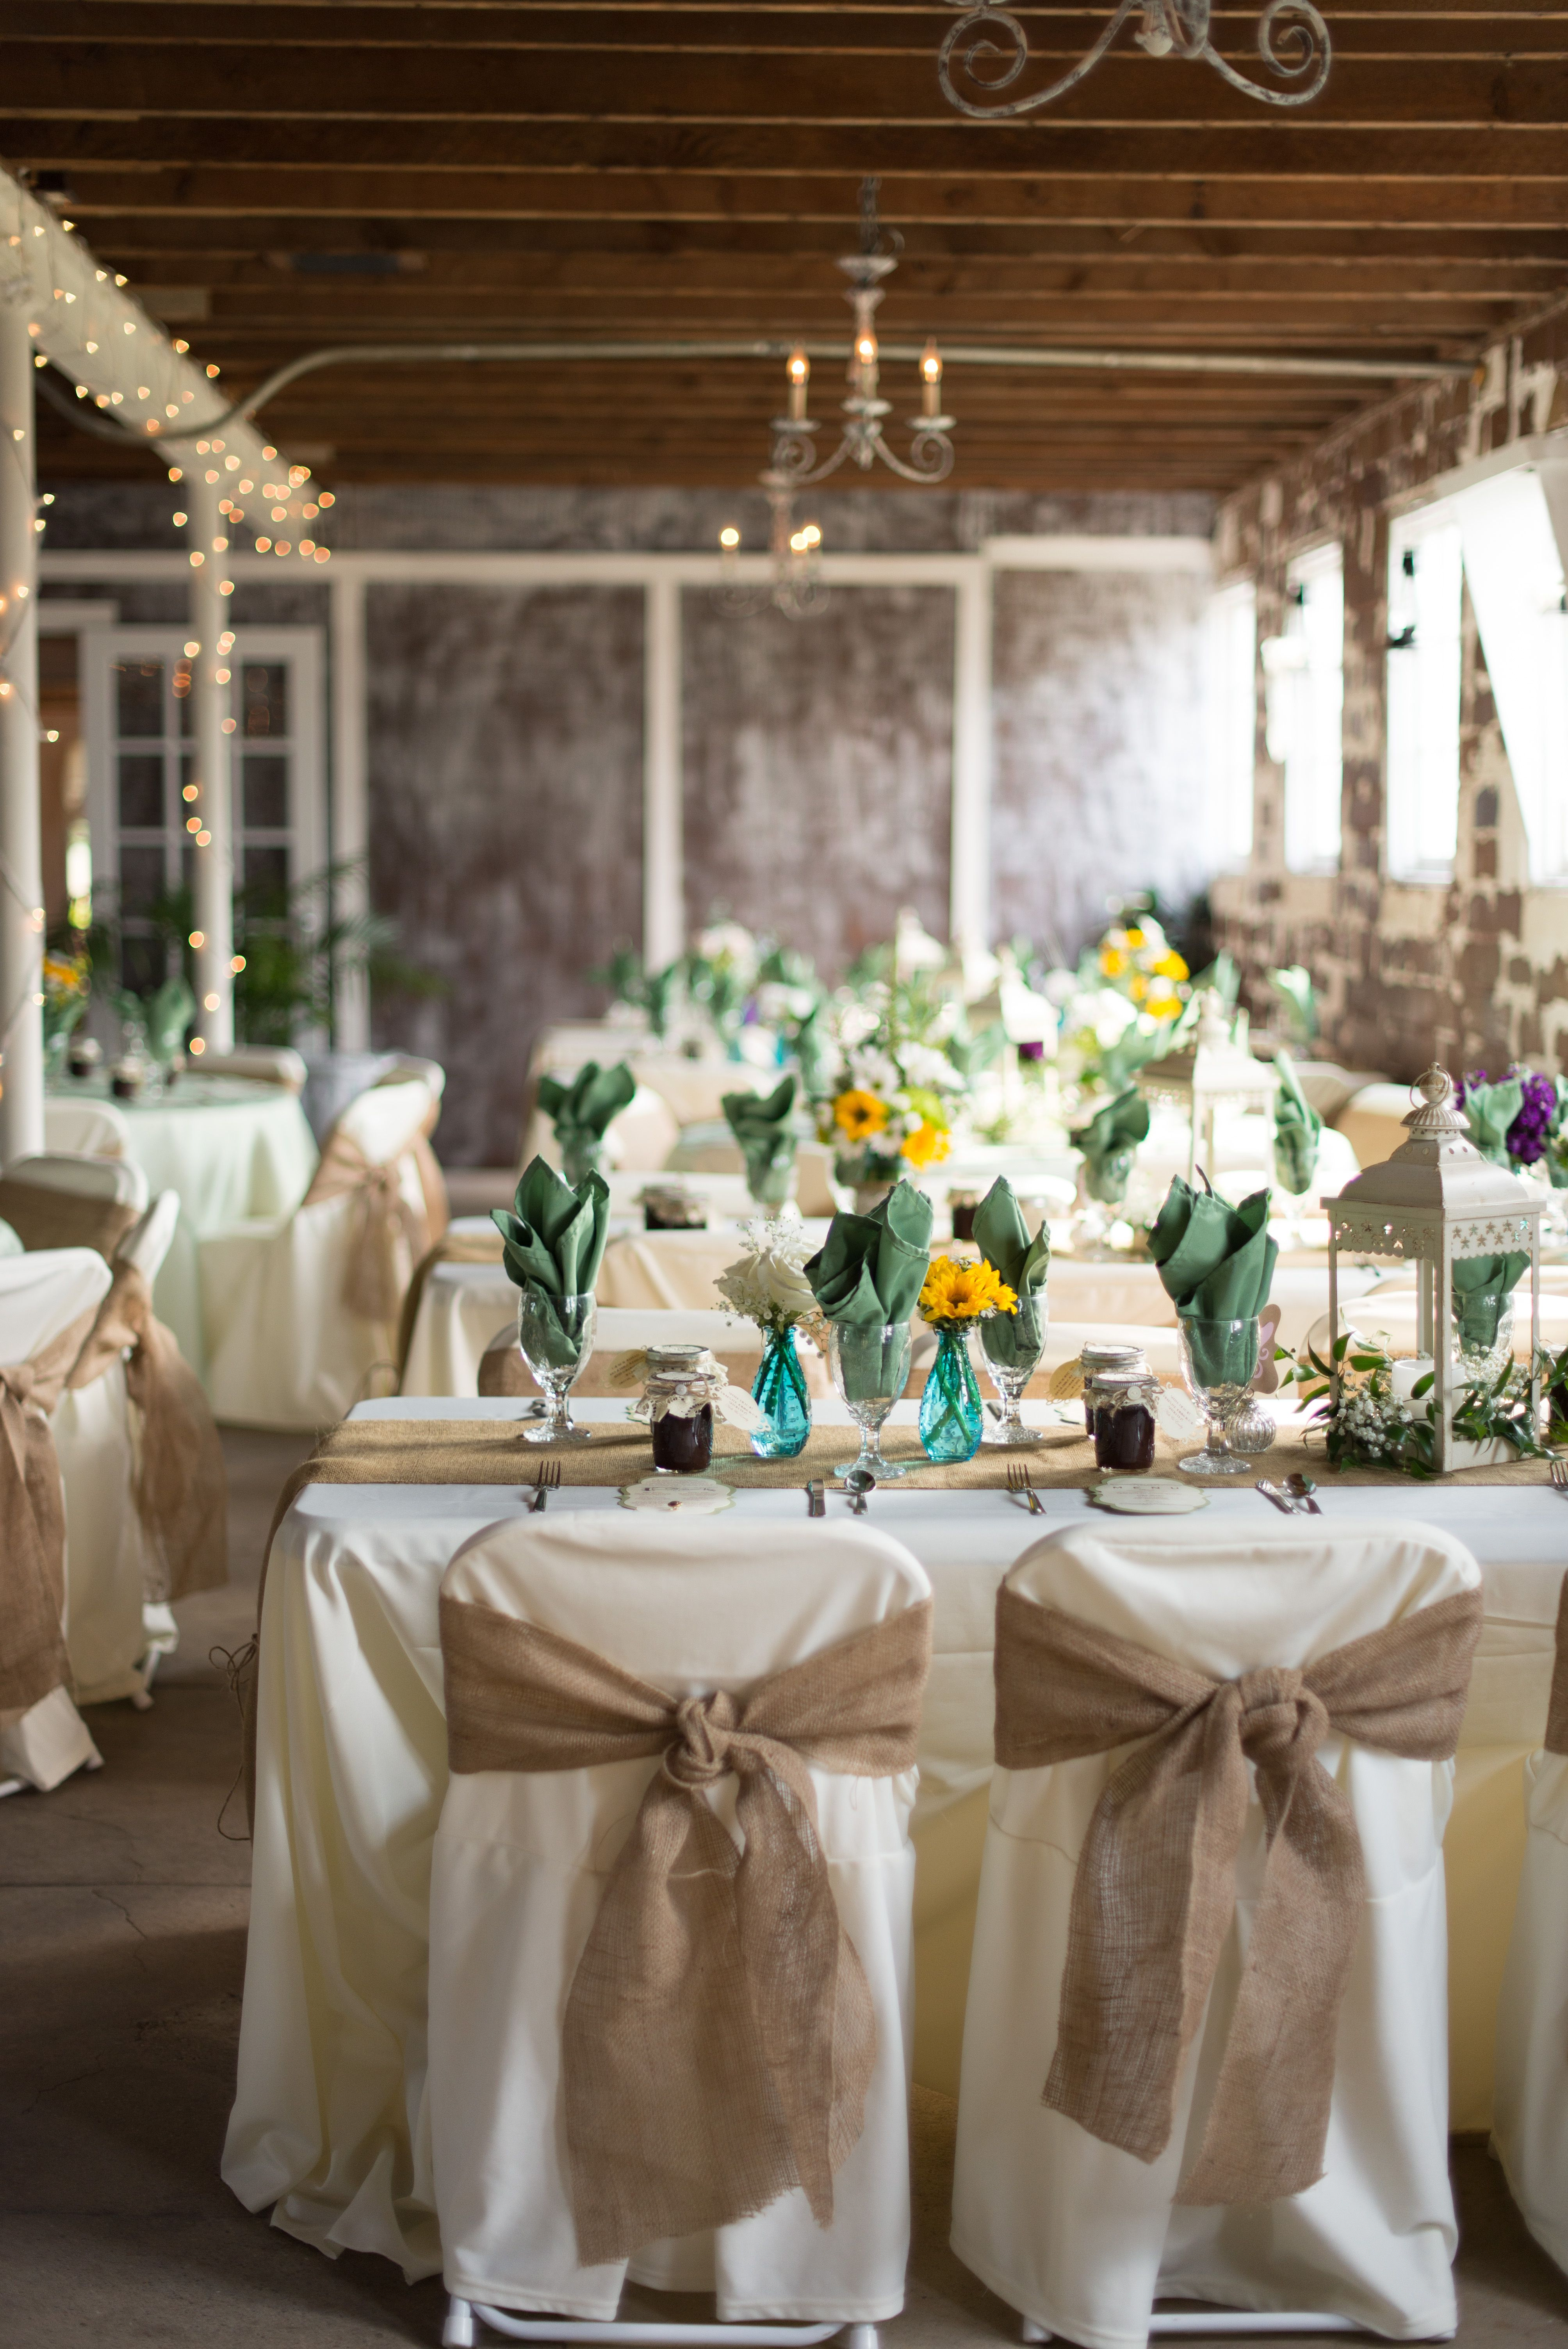 French Country Wedding Barn Reception Ivory Linens Burlap